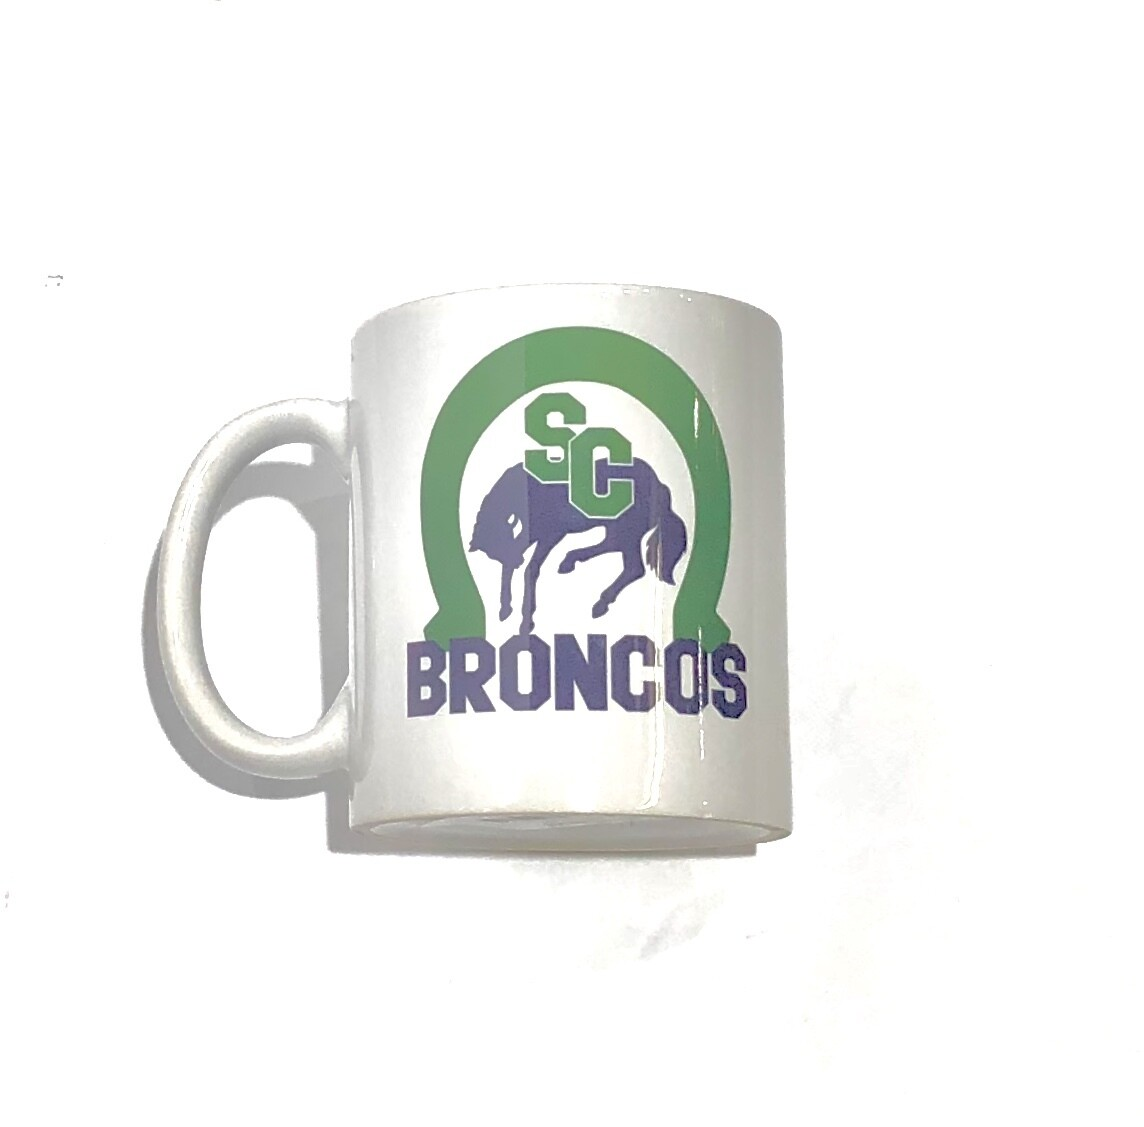 Broncos Coffee Mug